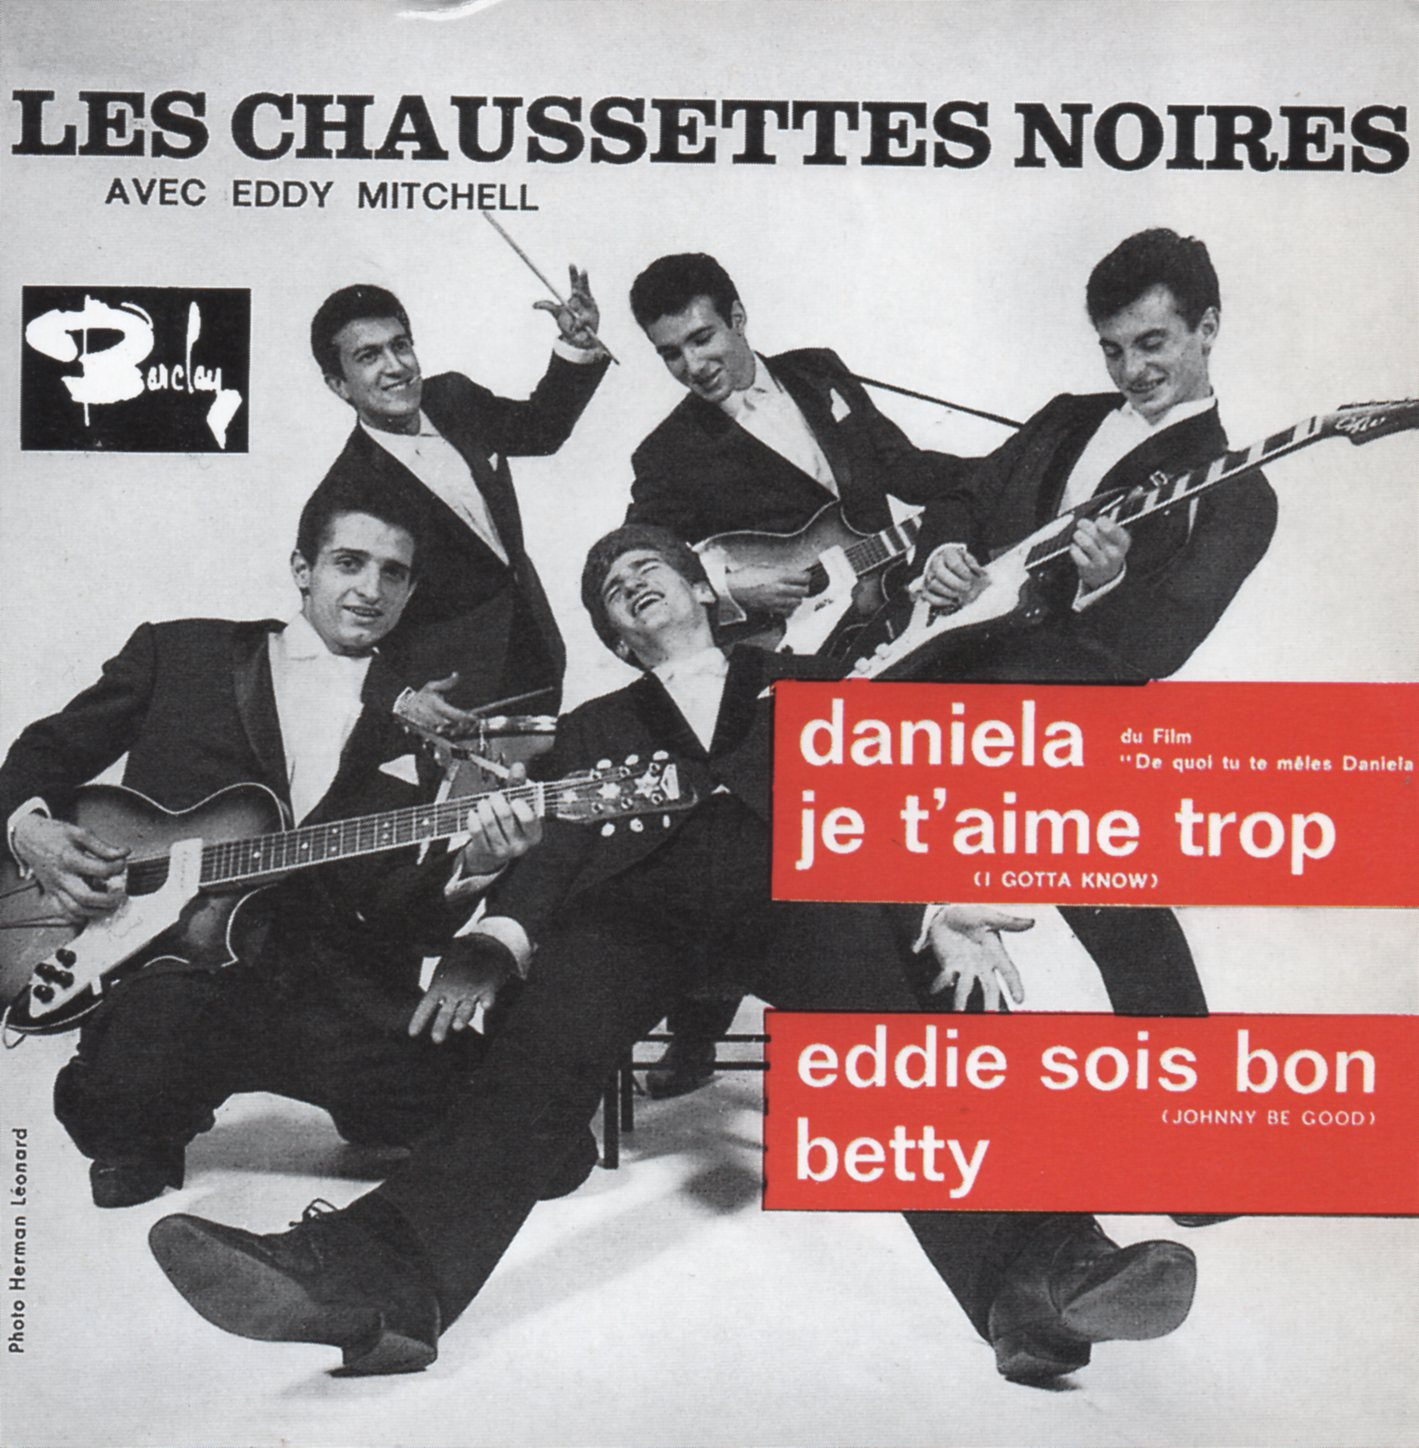 EDDY MITCHELL - LES CHAUSSETTES NOIRES - Daniela 4-TRACK CARD SLEEVE Edition Limitée - CD single